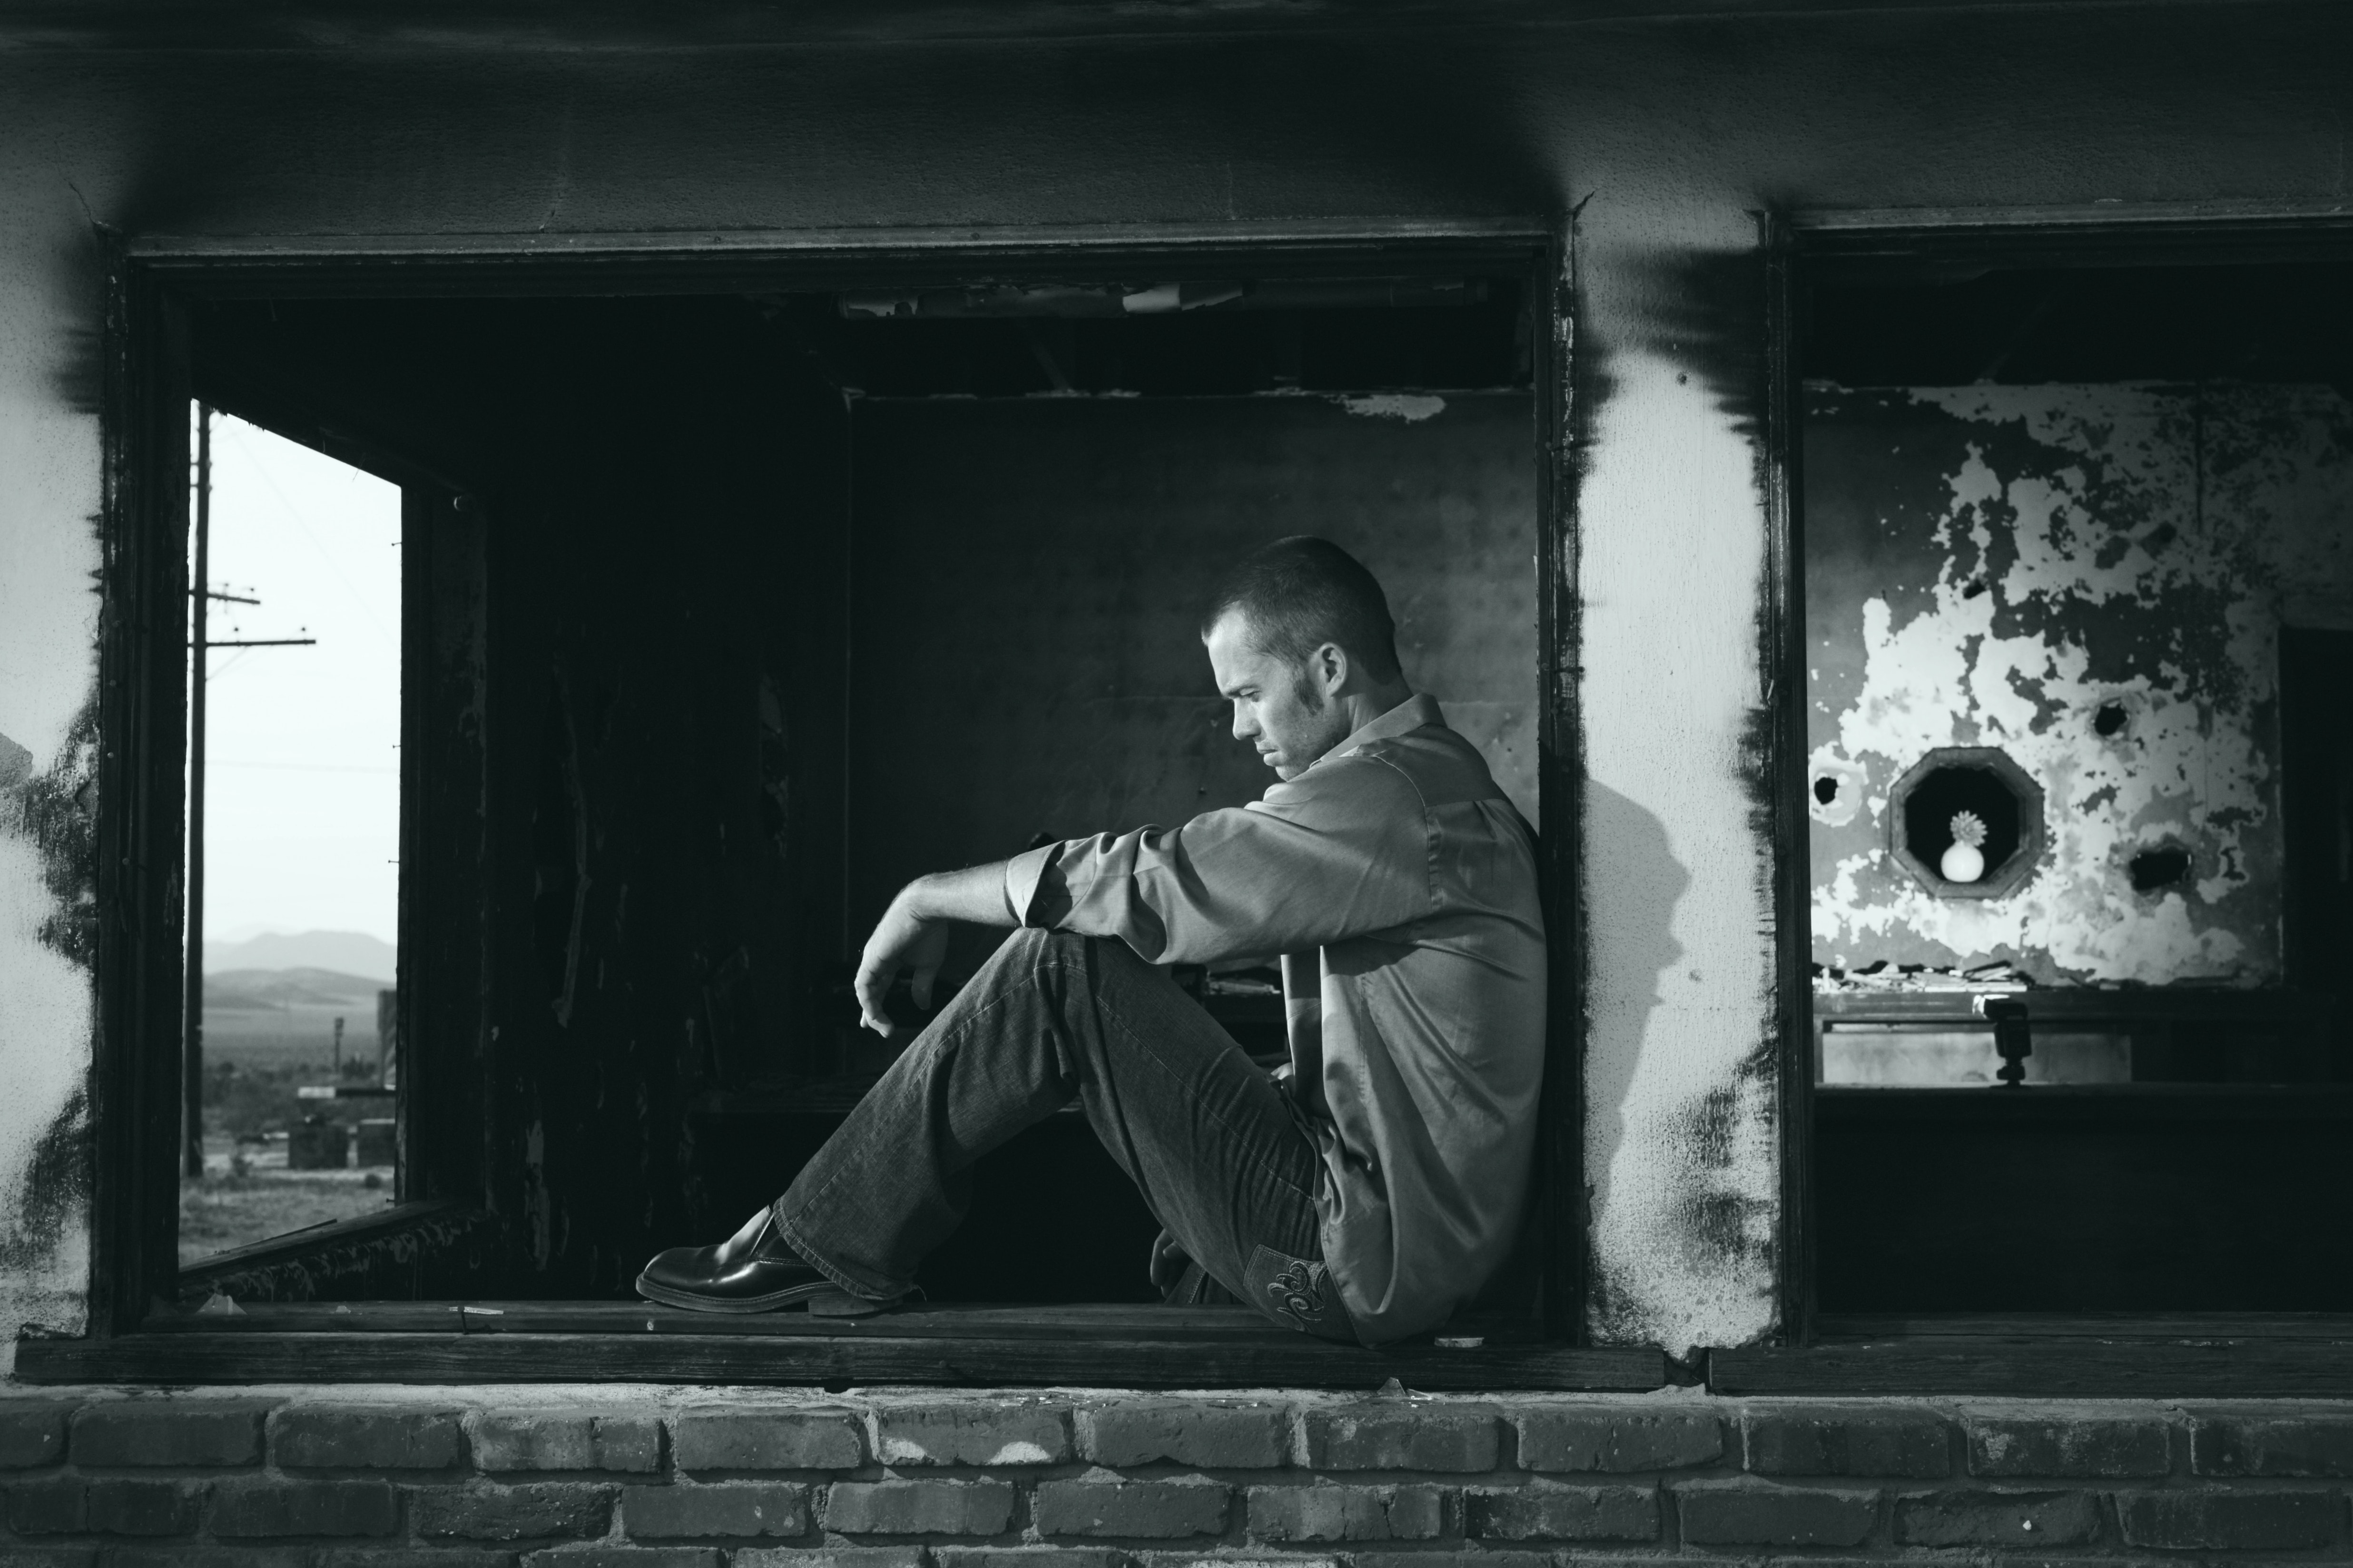 Grayscale photo of man sitting download a pic donate a buck